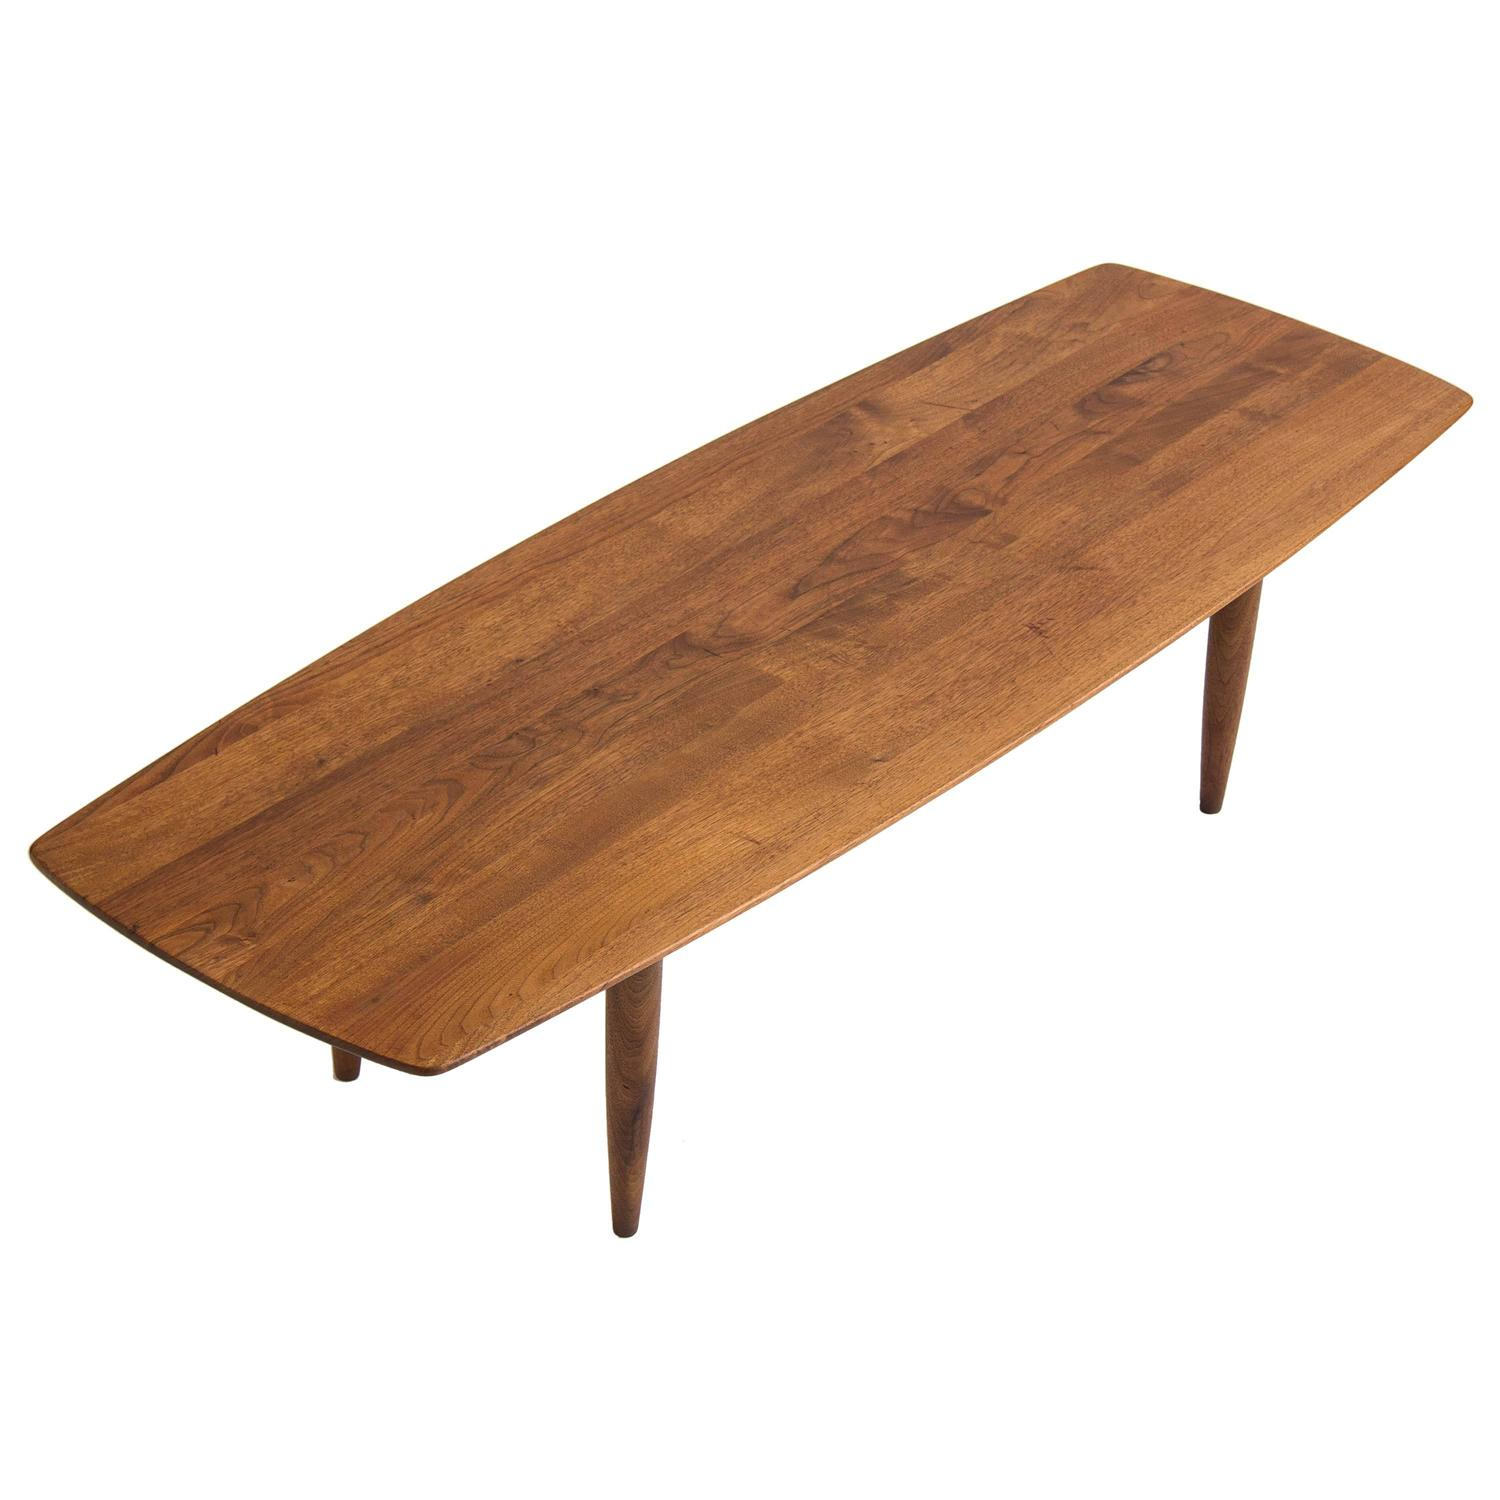 Solid Walnut Surfboard Coffee Table by Prelude at 1stdibs